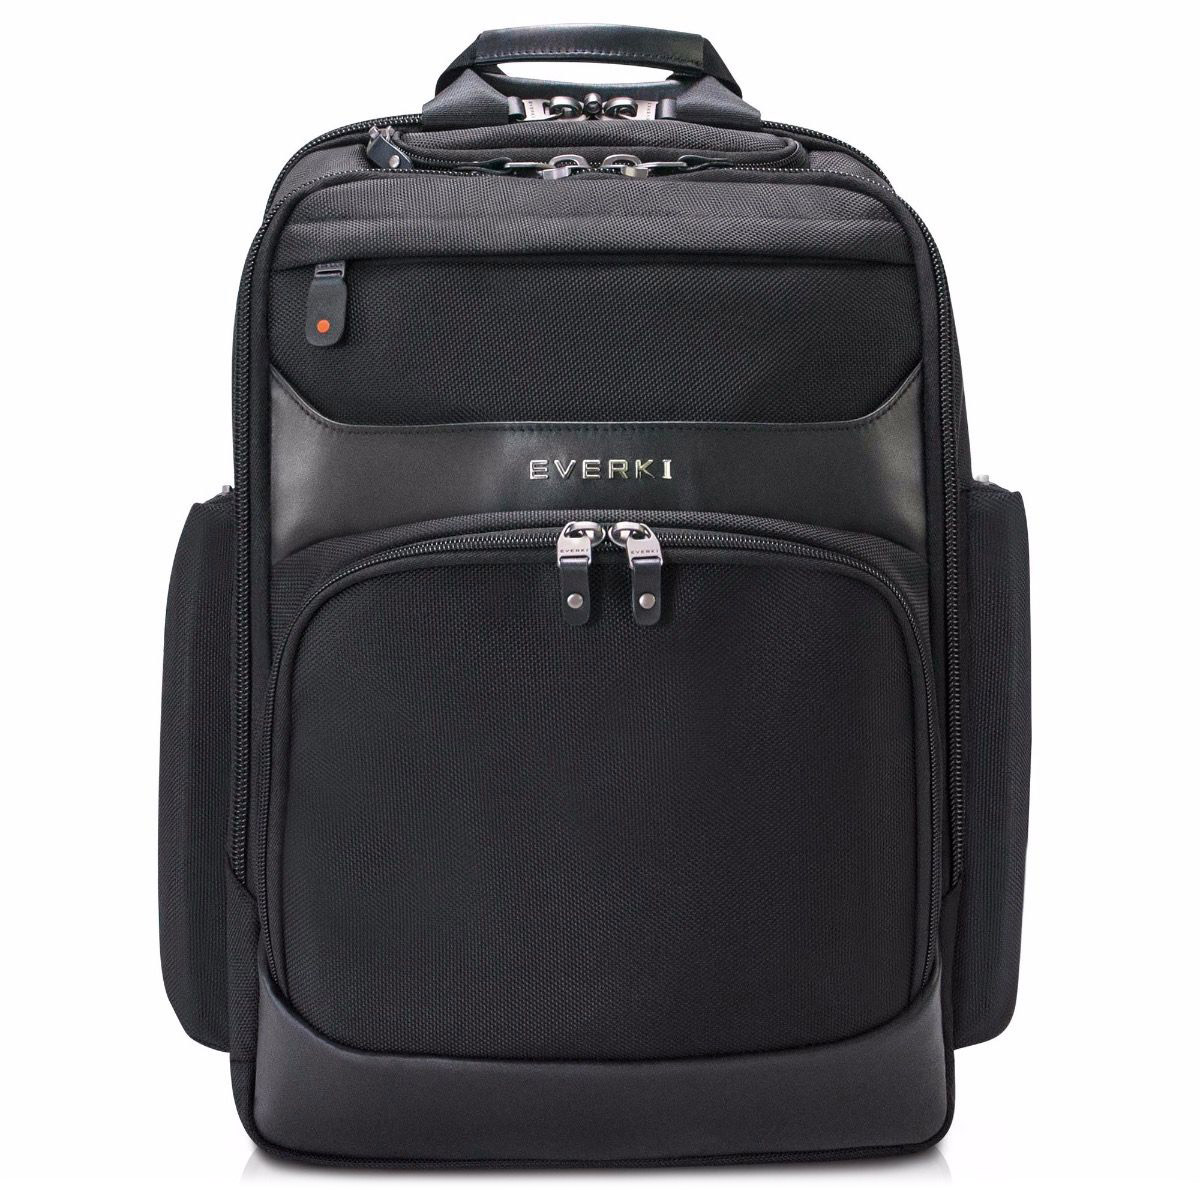 Everki 15.6in Onyx Travel Friendly Laptop Backpack